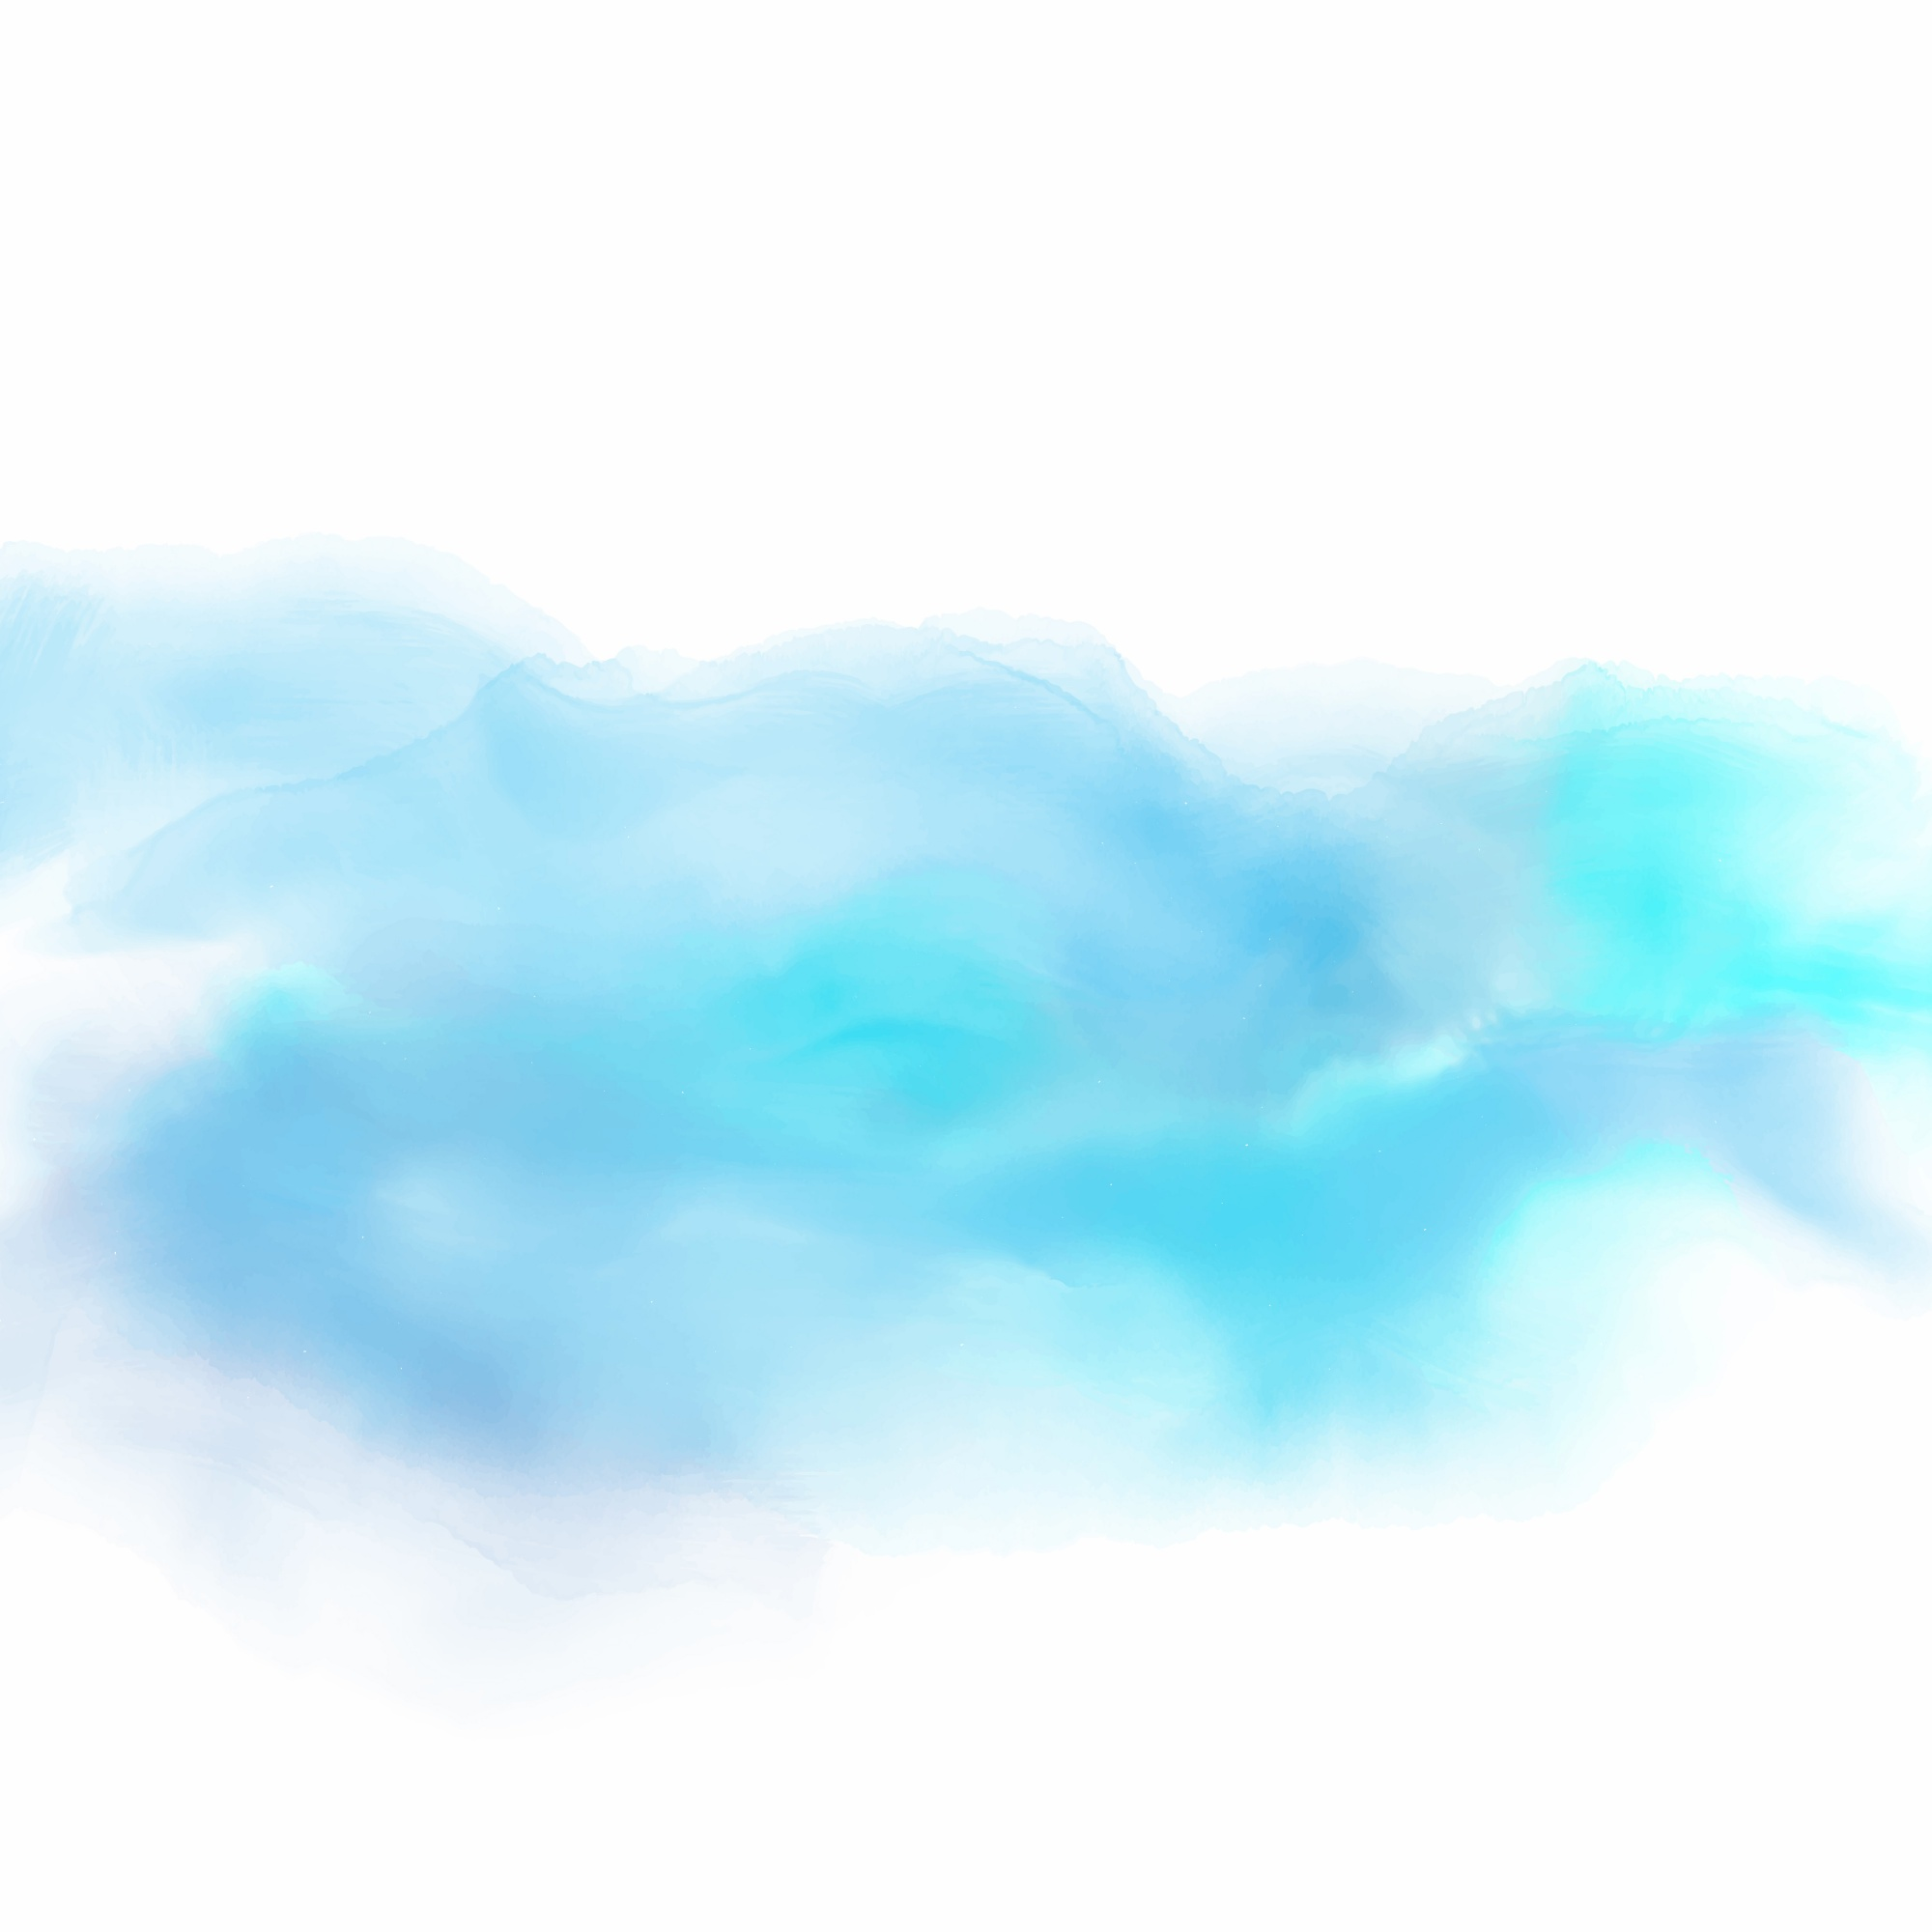 Watercolor background in shades of blue